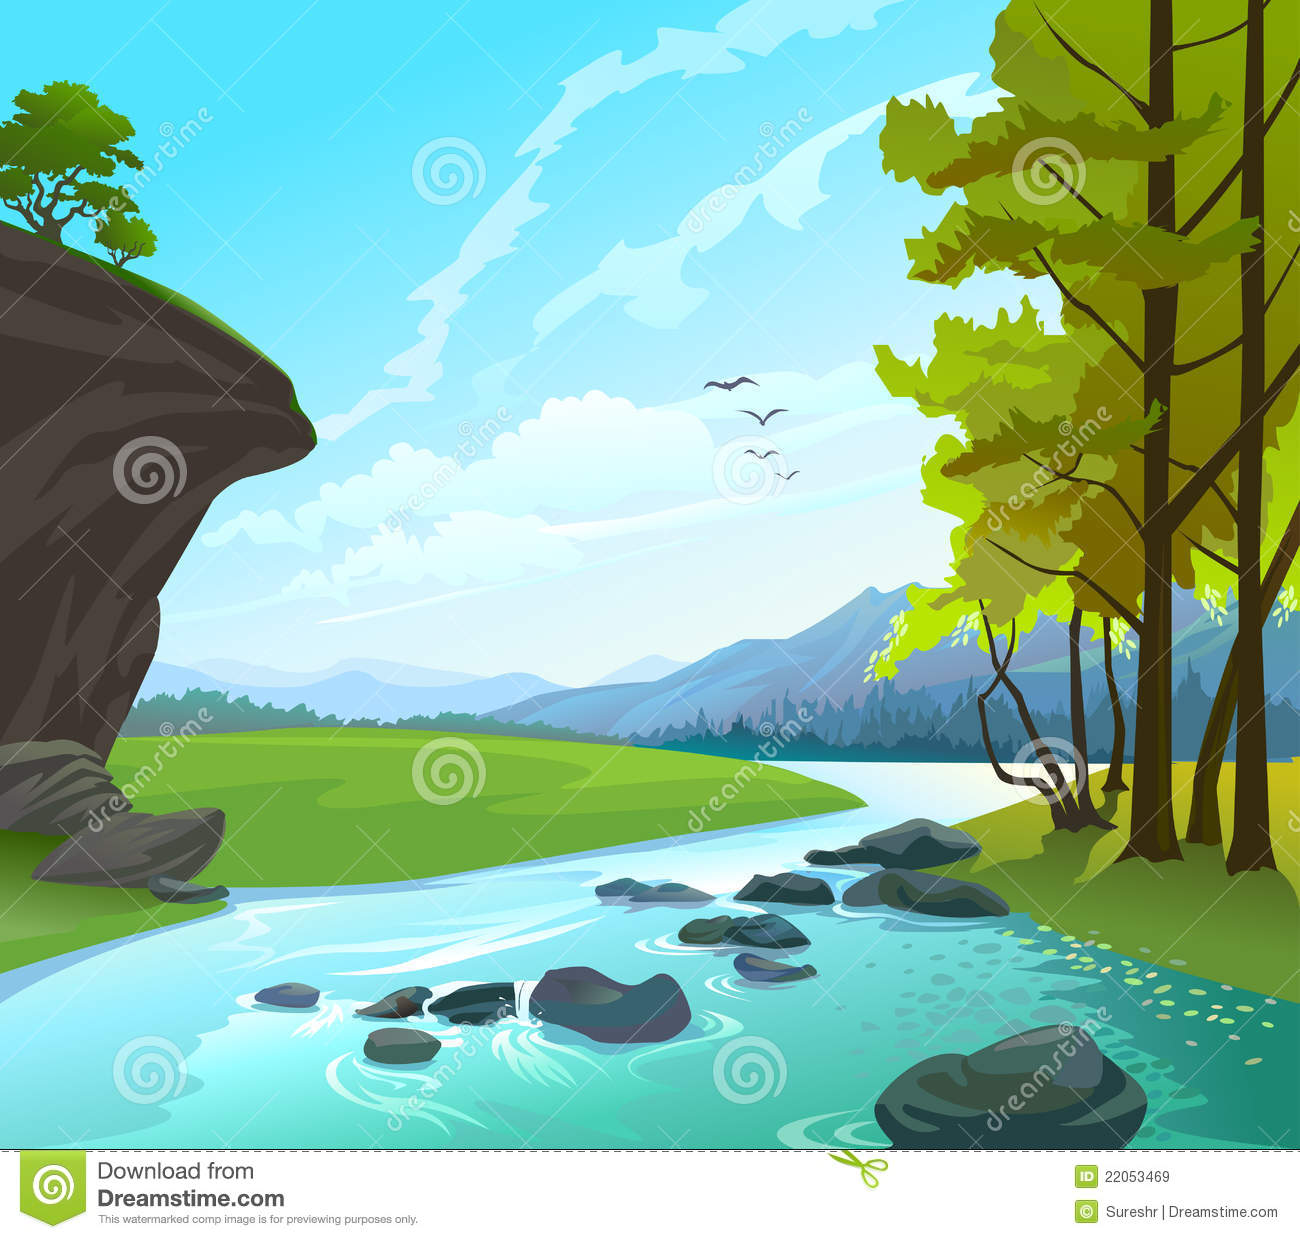 Clipart of a river svg free download River And Trees Clipart - Clipart Kid svg free download